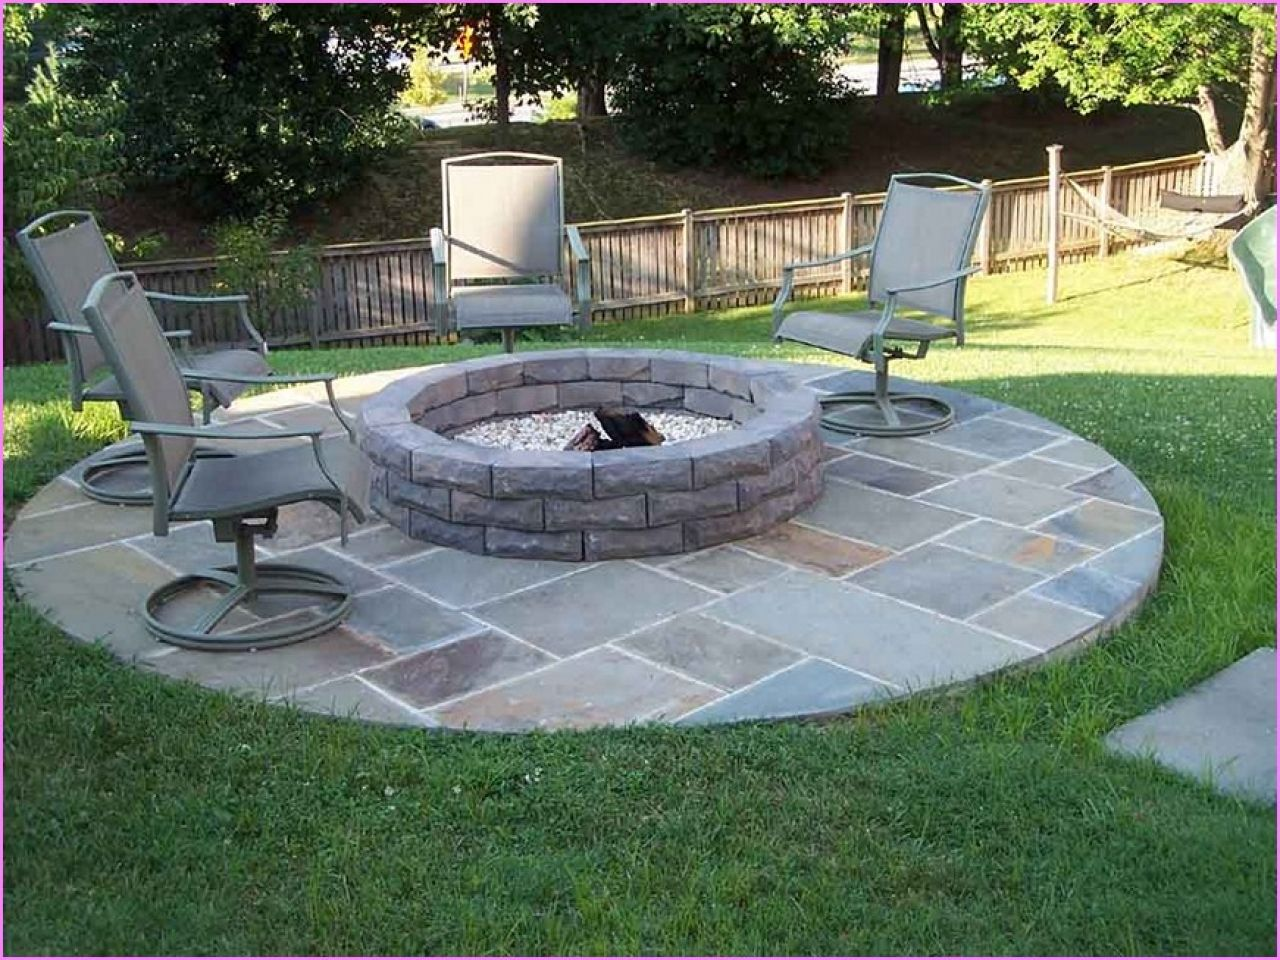 Fire Pit Backyard Ideas small backyard designs with fire pits Homemade Fire Pit Designs Ideas Fire Pit Backyard Fire Easy